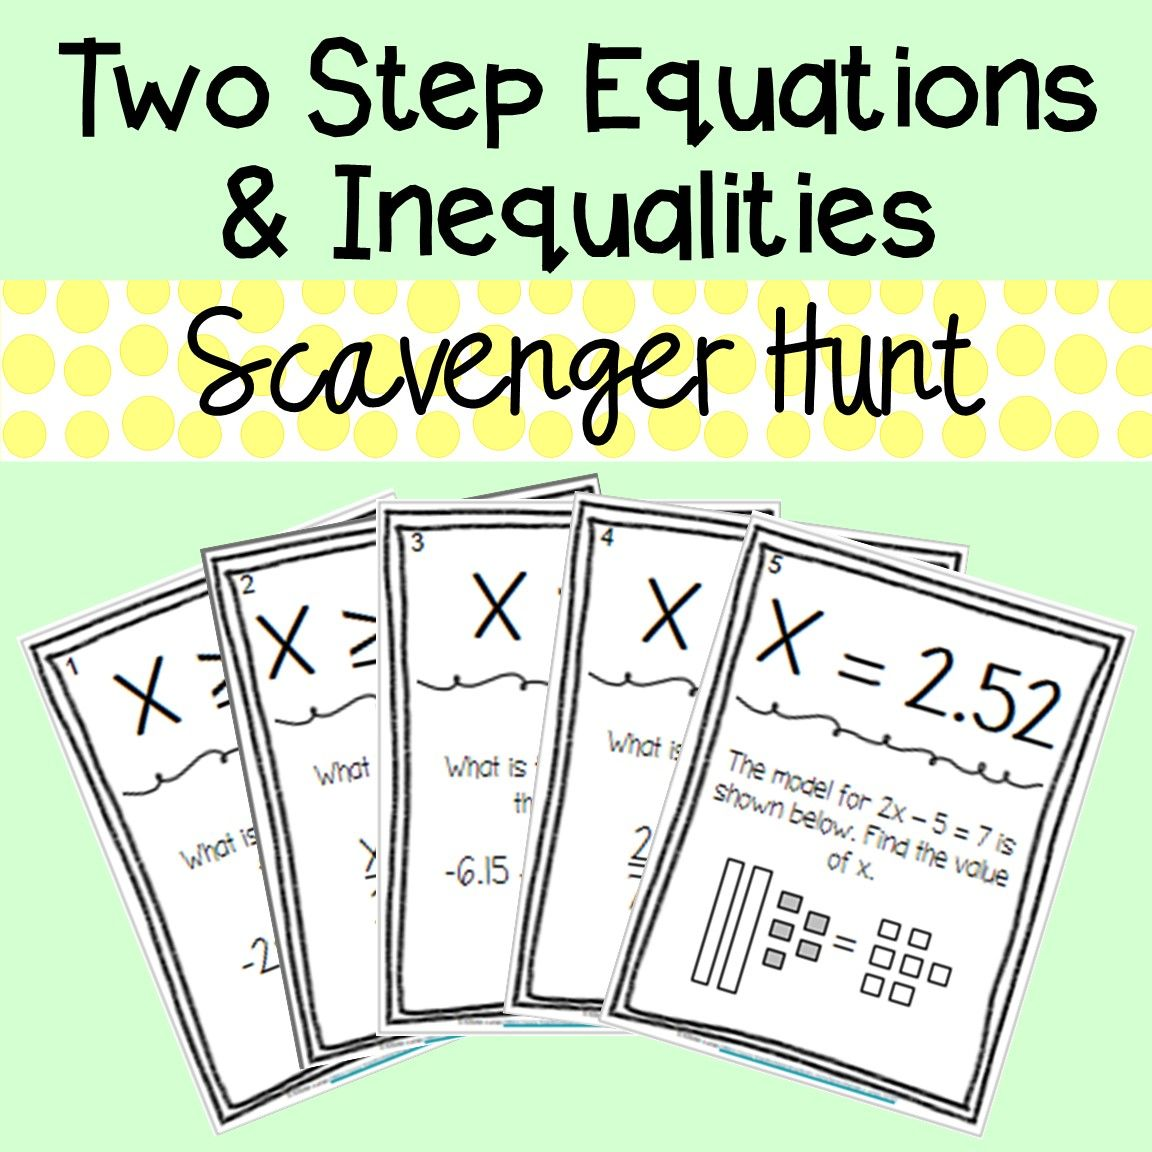 Two Step Equations And Inequalities Scavenger Hunt